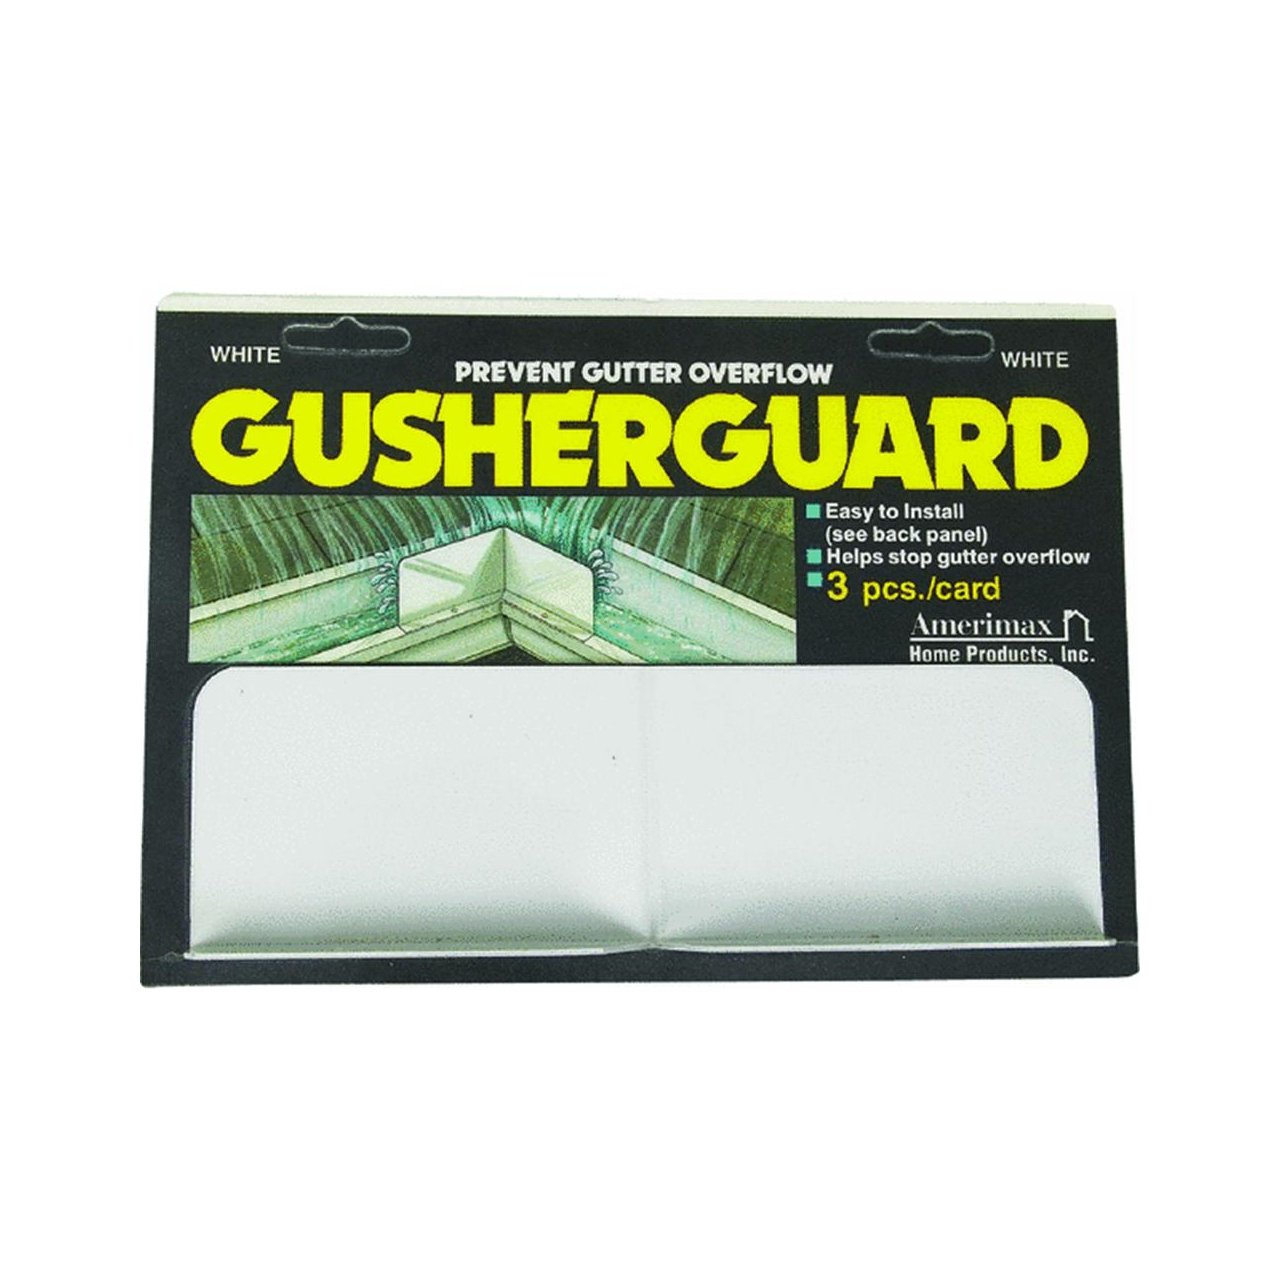 Amerimax 3PK White Gusher Guard Home Products 25074 GusherGuard, Pack of 1